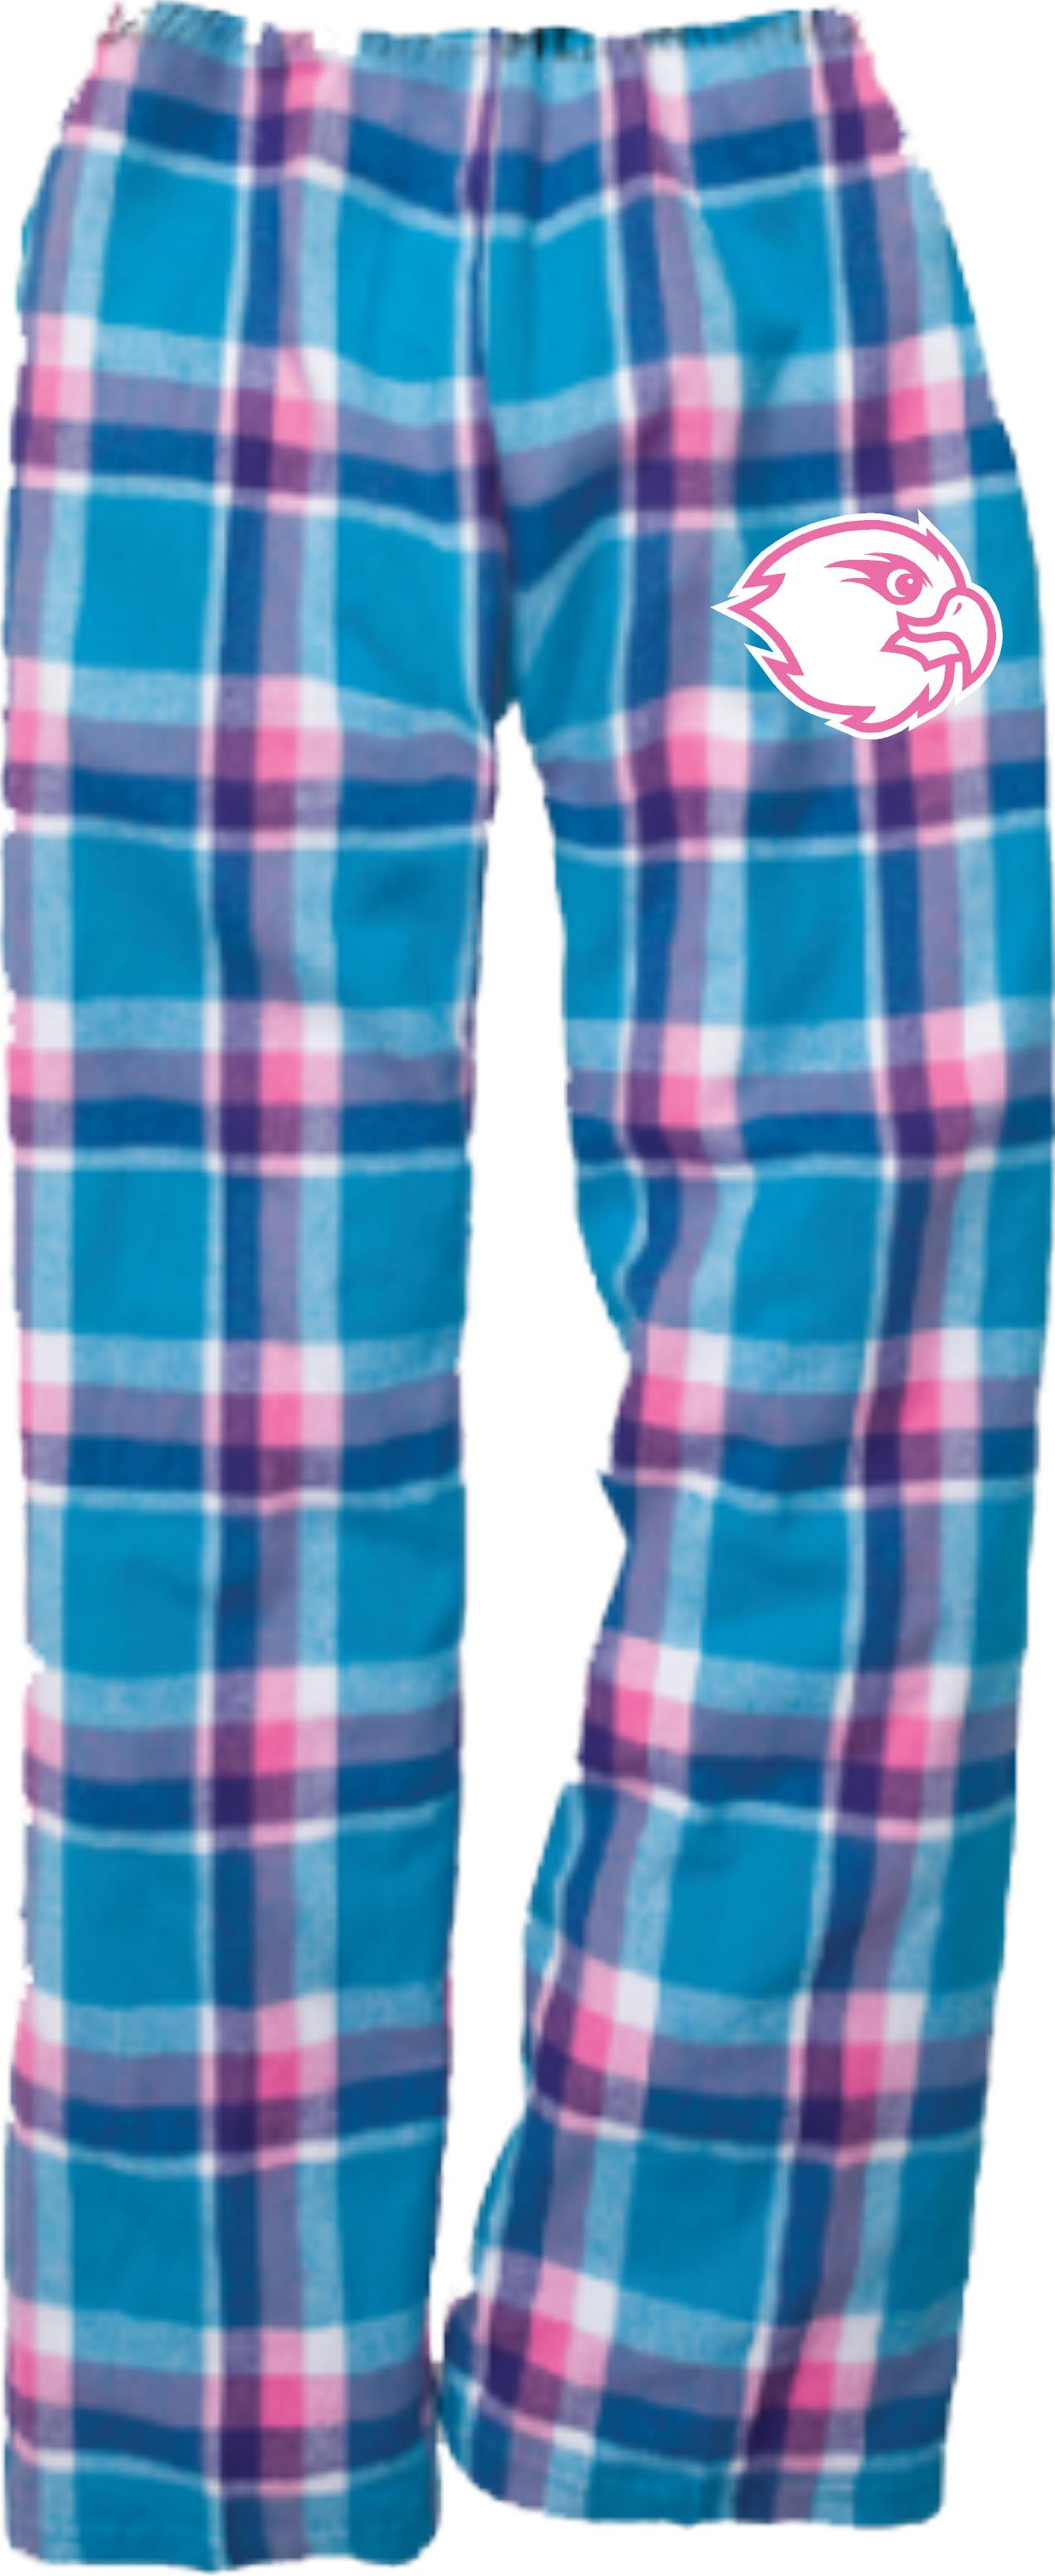 Light blue and pink flannel pj's